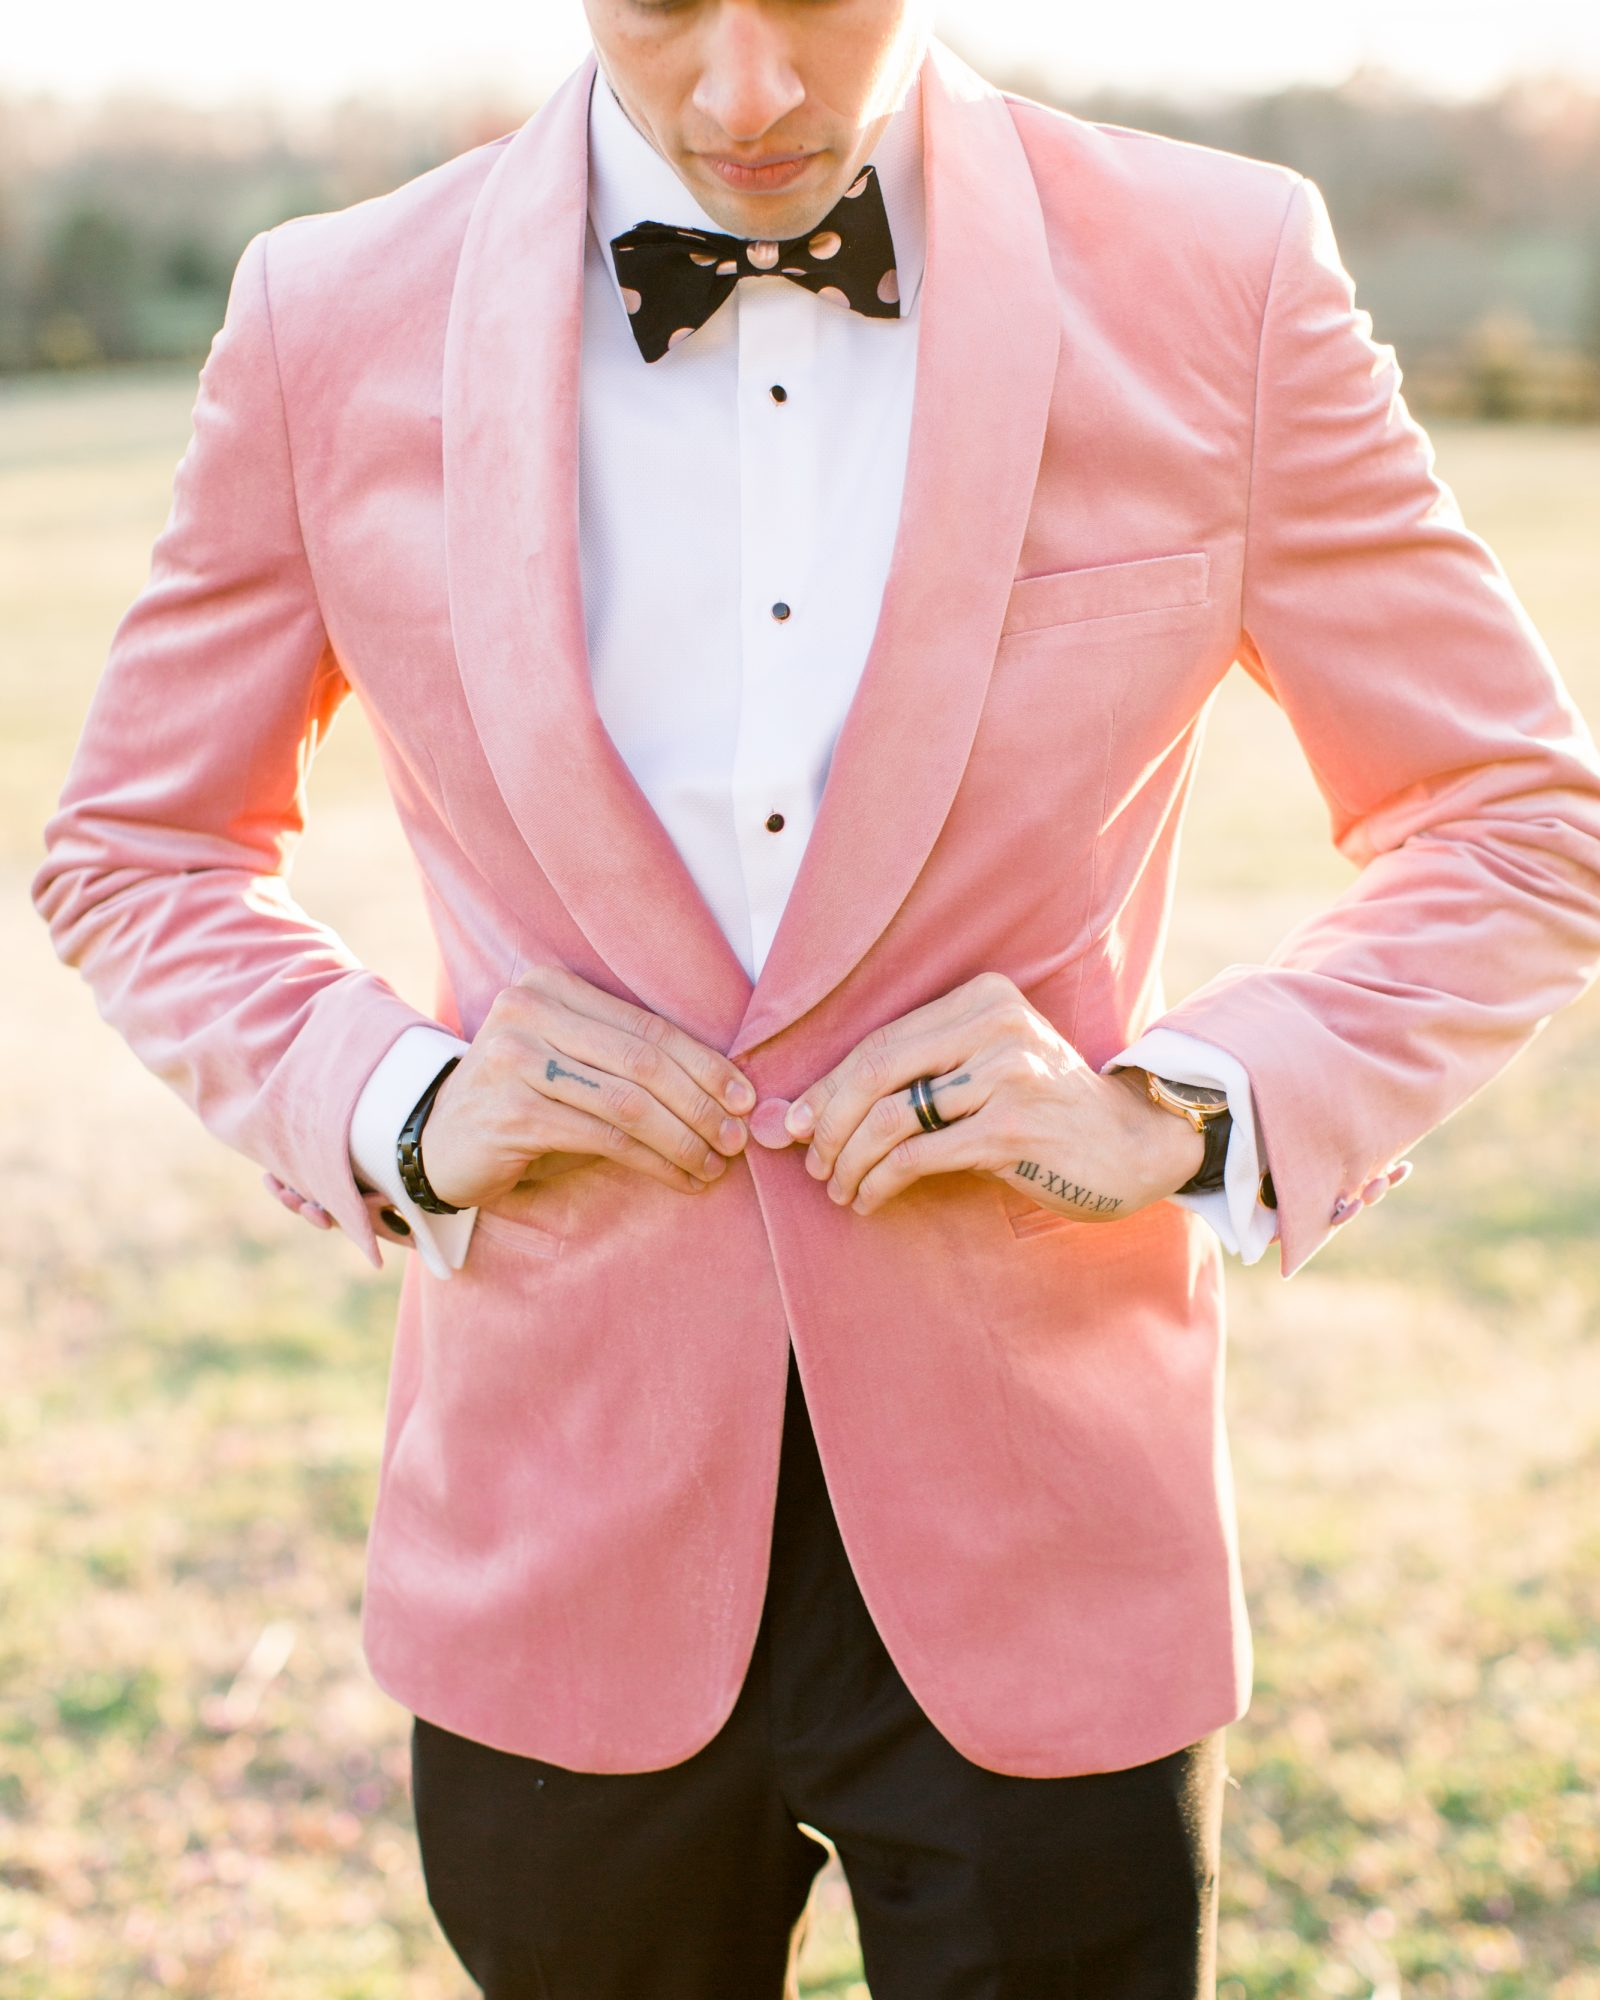 michelle nathan wedding groom wearing pink tuxedo jacket